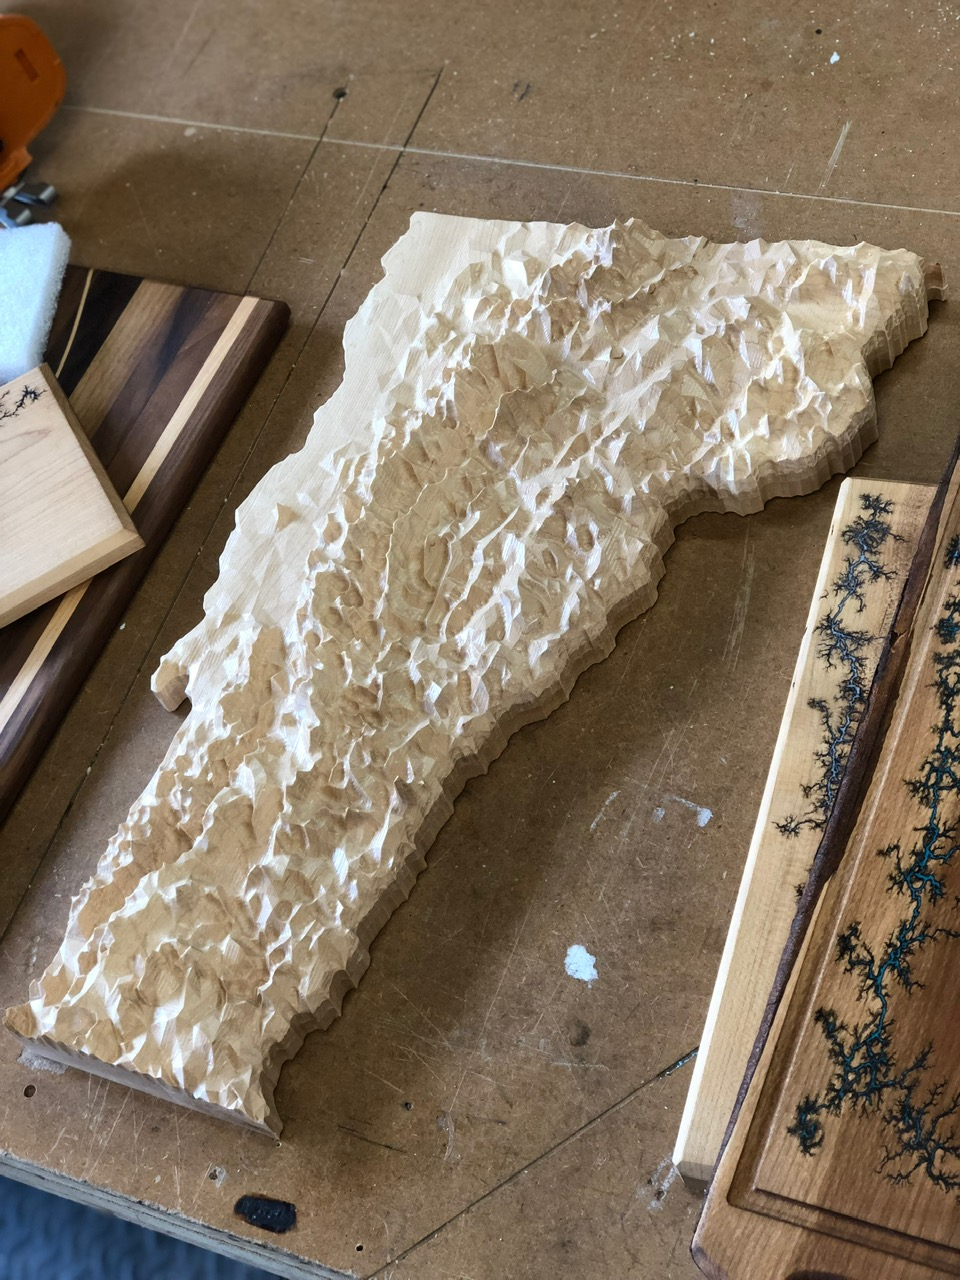 "Vermont Topographic Map - Carved using USGS satellite information, this solid maple map of Vermont measures 13"" across and 20"" long. The map was made on Kyle's purpose built CNC router, and took 20 hours to carve. It is incredibly accurate, however the elevations have been exaggerated by approximately 90 times to make the topography more pronounced."